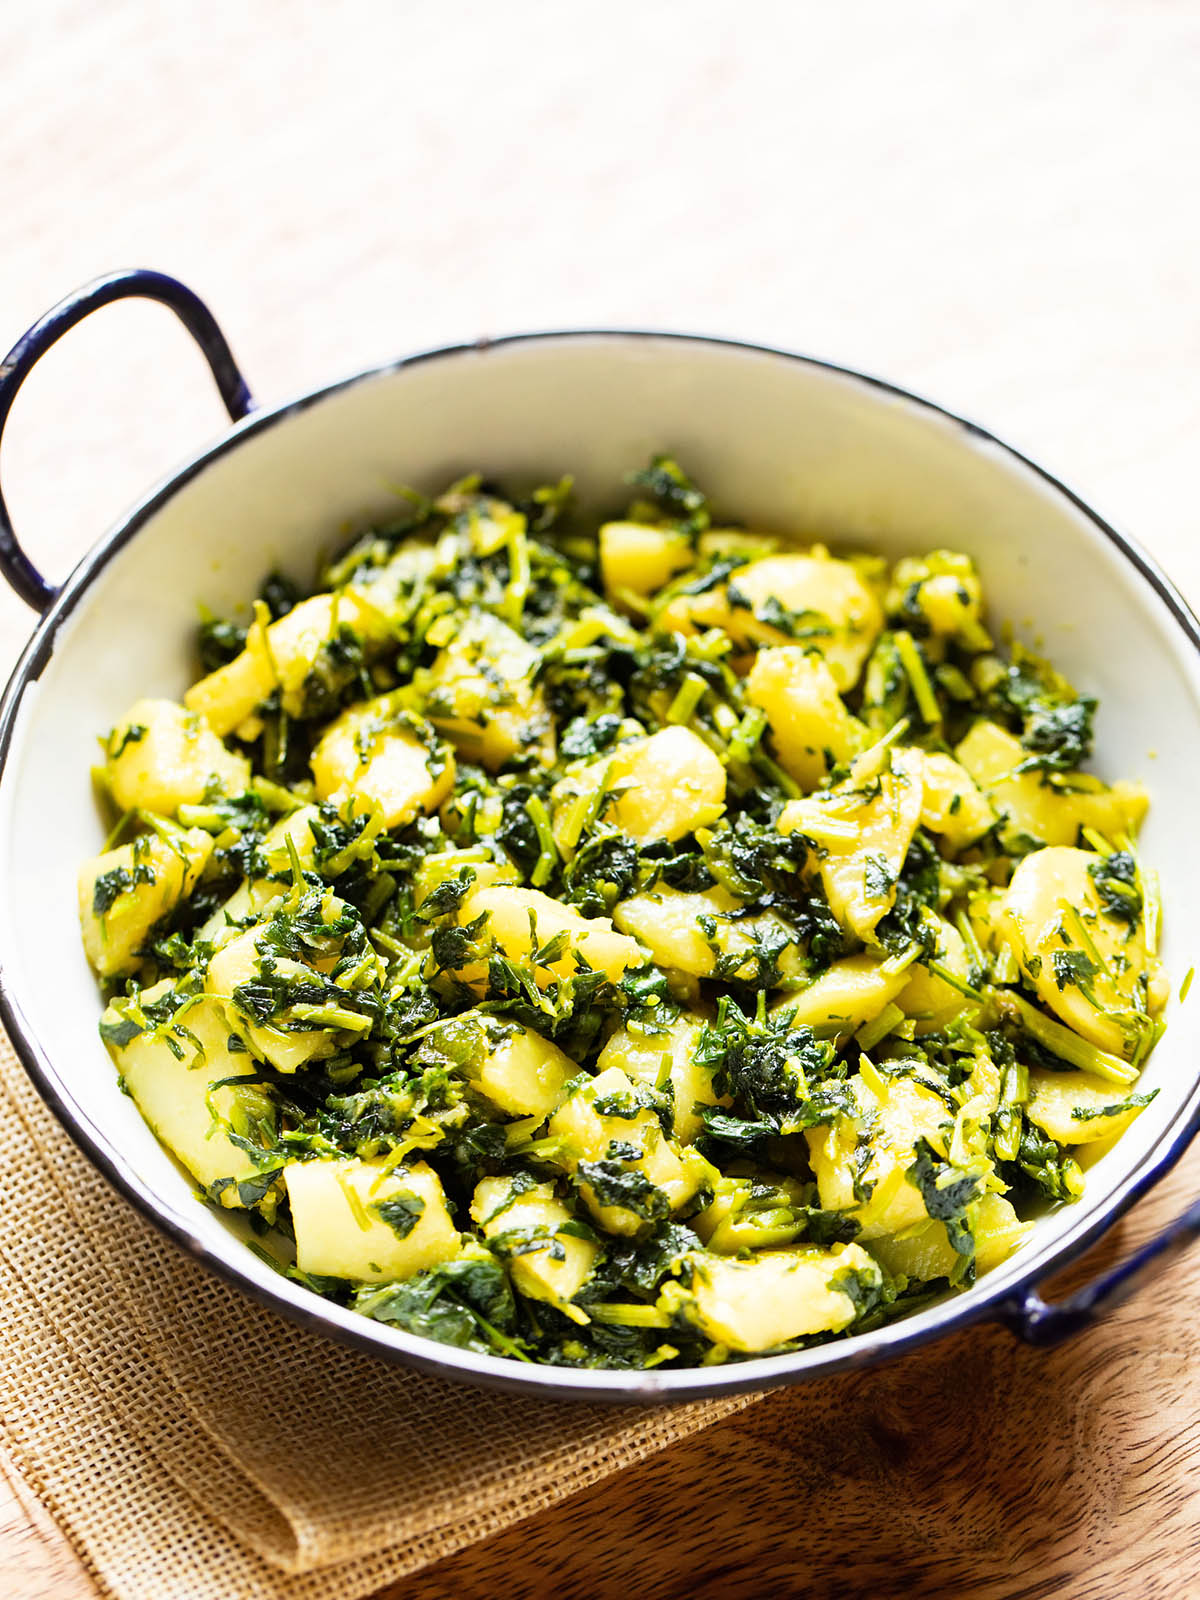 aloo methi in a enameled black rimmed small white wok on a brown jute napkin